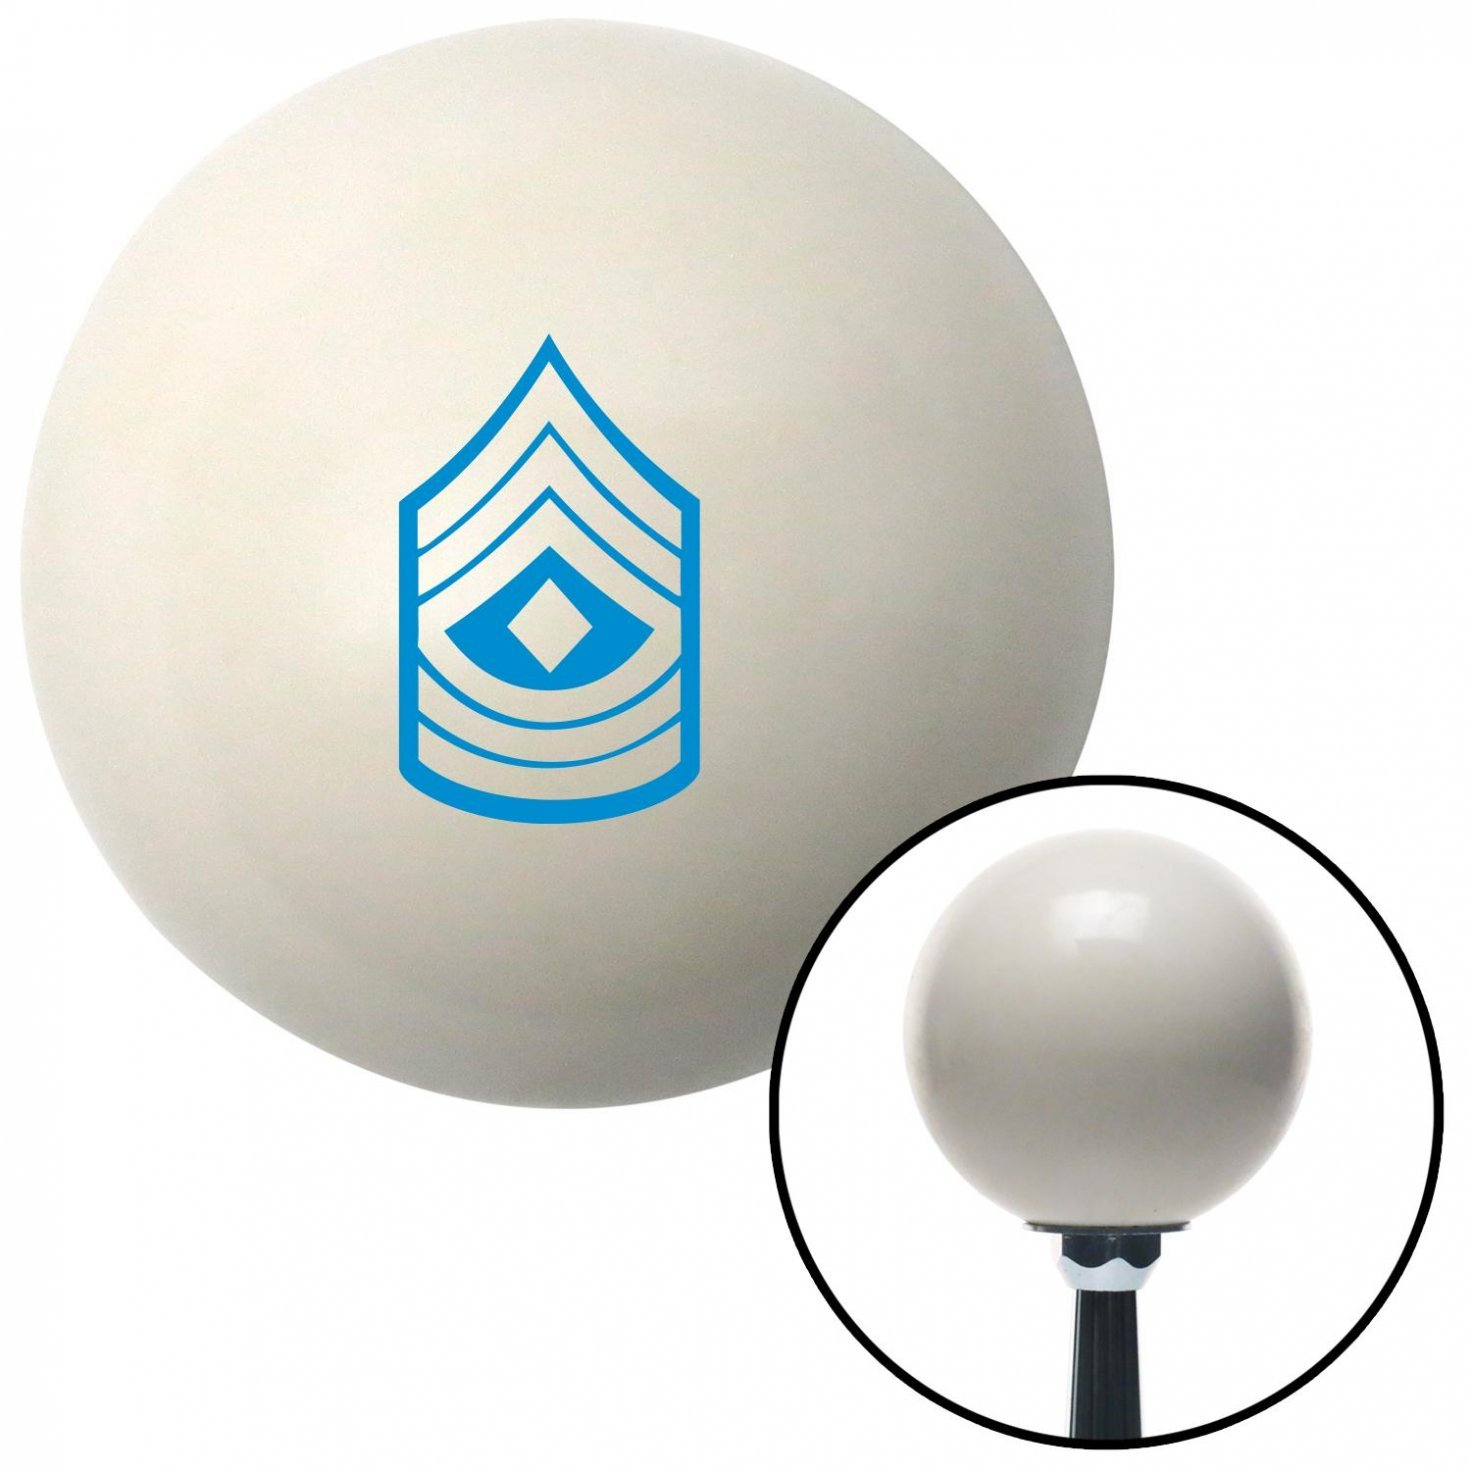 Blue 08 First Sergeant American Shifter 40741 Ivory Shift Knob with 16mm x 1.5 Insert